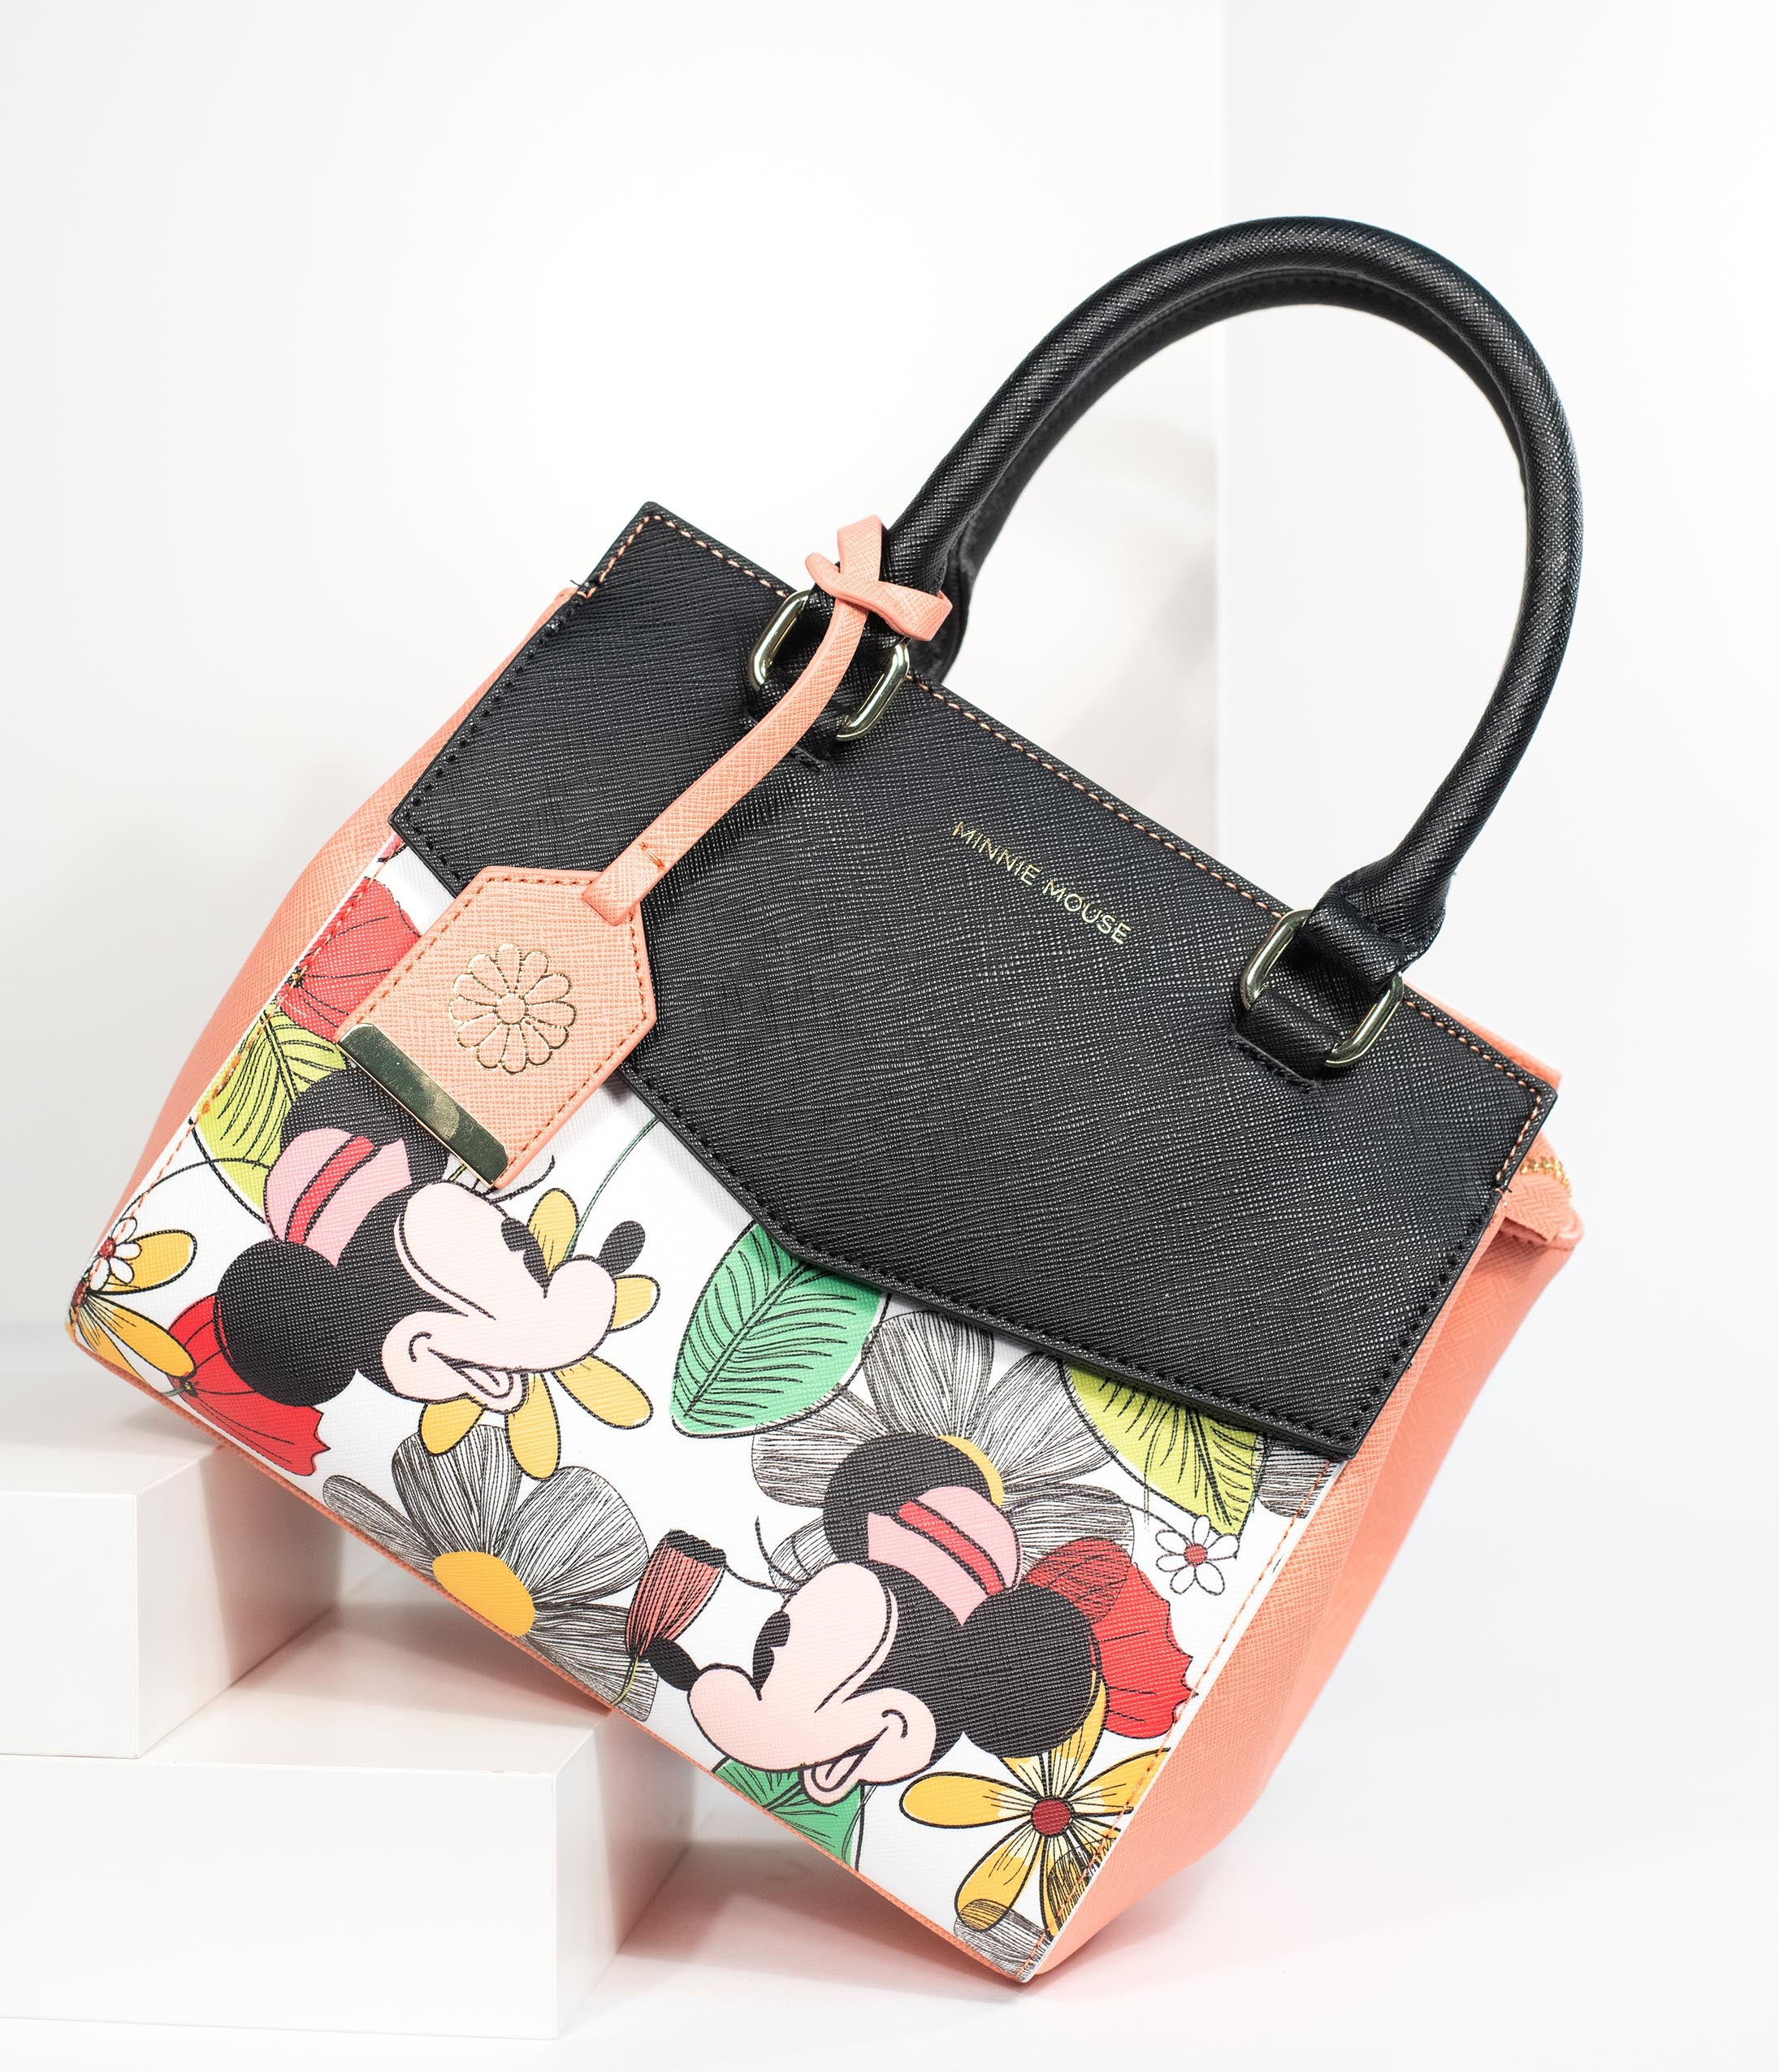 2eb292c7633a Loungefly Peach   Black Leatherette Tropical Floral Minnie Mouse Disney  Purse